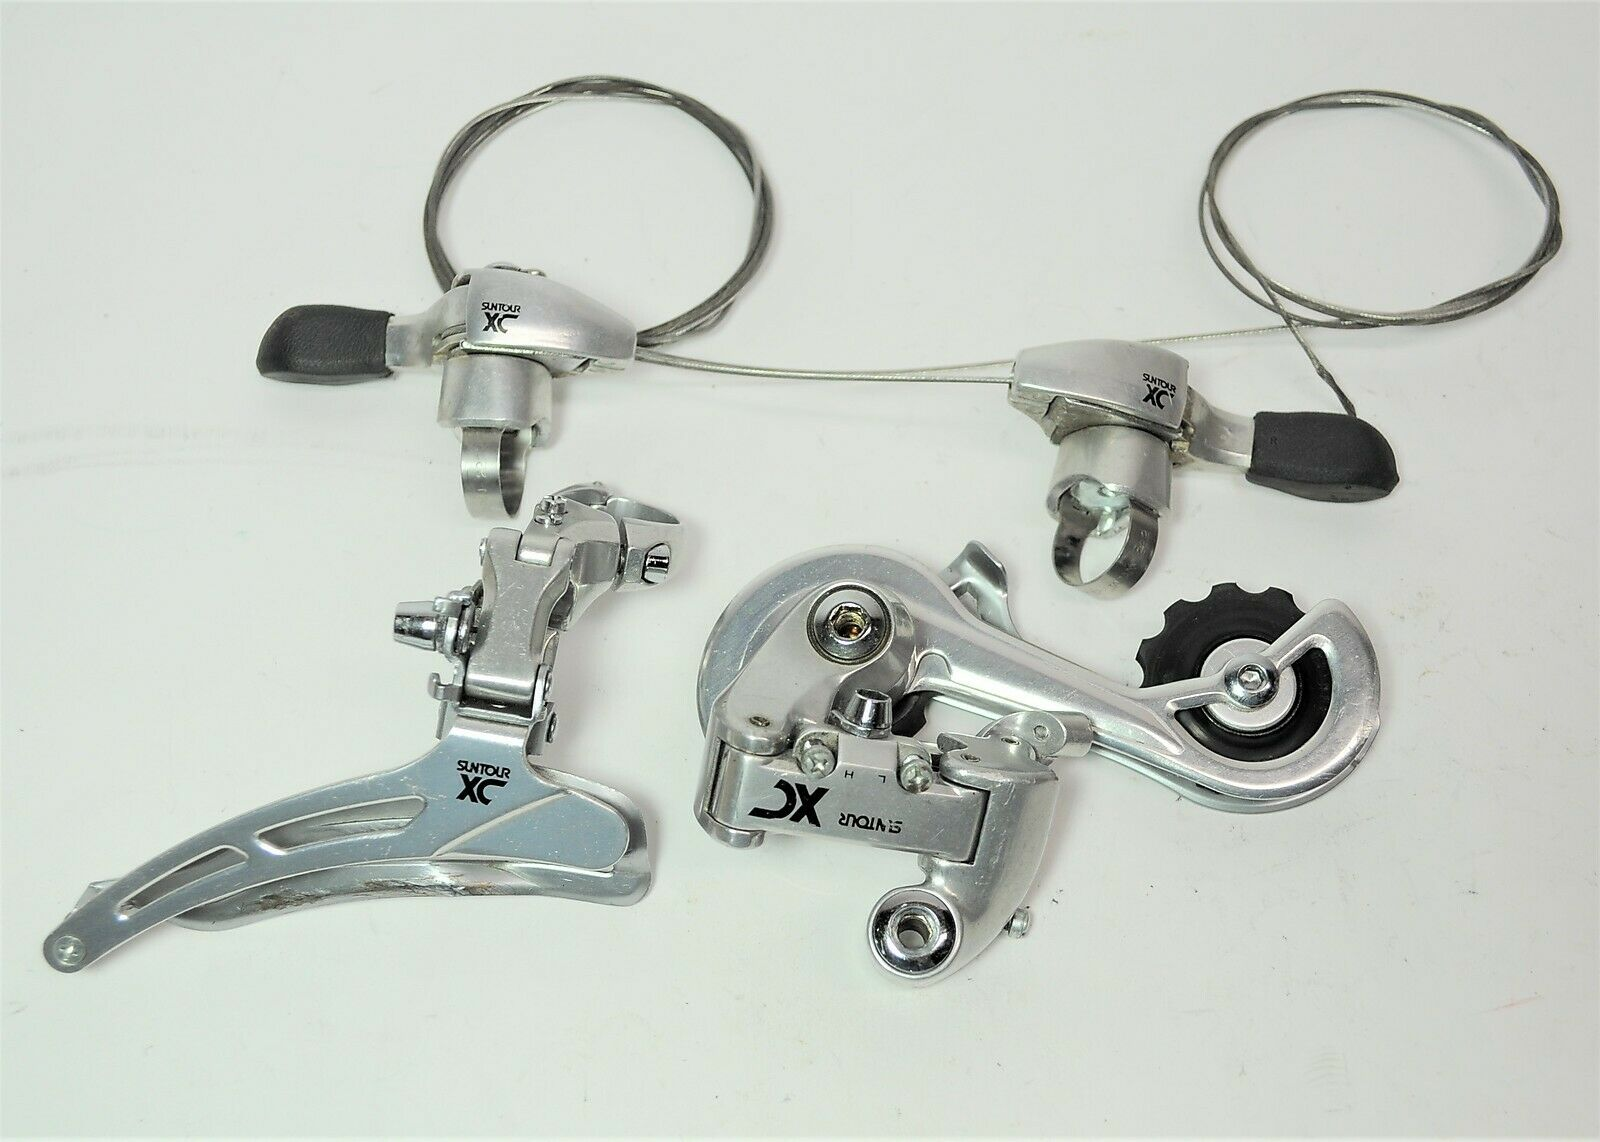 MAEDA SUNTOUR XC BICYCLE POWER THUMB RATCHET SHIFTERS FRONT &  REAR DERAILLEURS  be in great demand